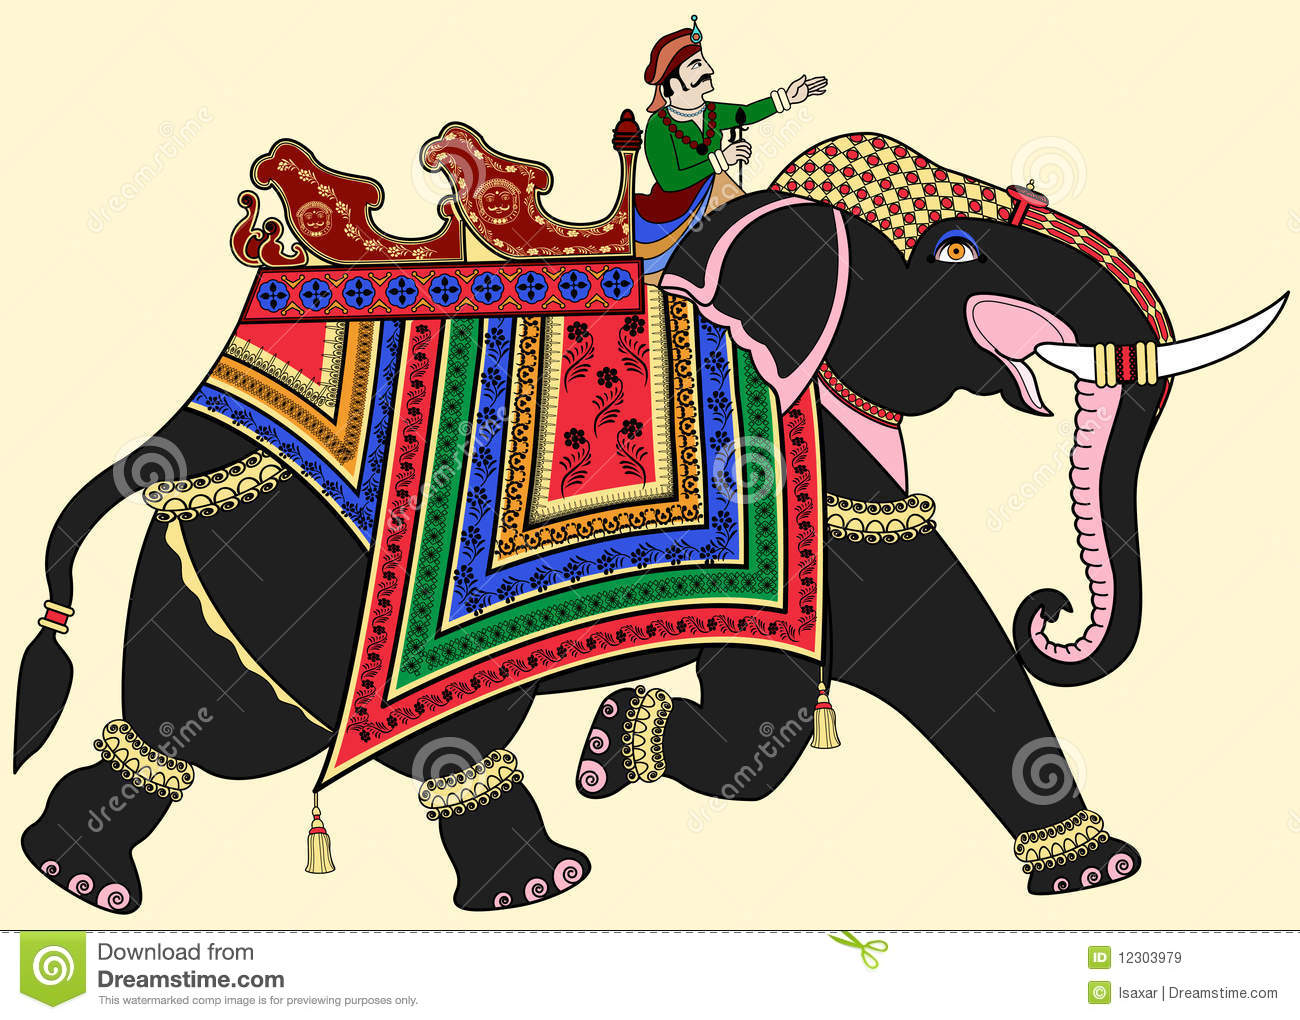 Decorated Indian elephant stock vector. Image of mammal ...